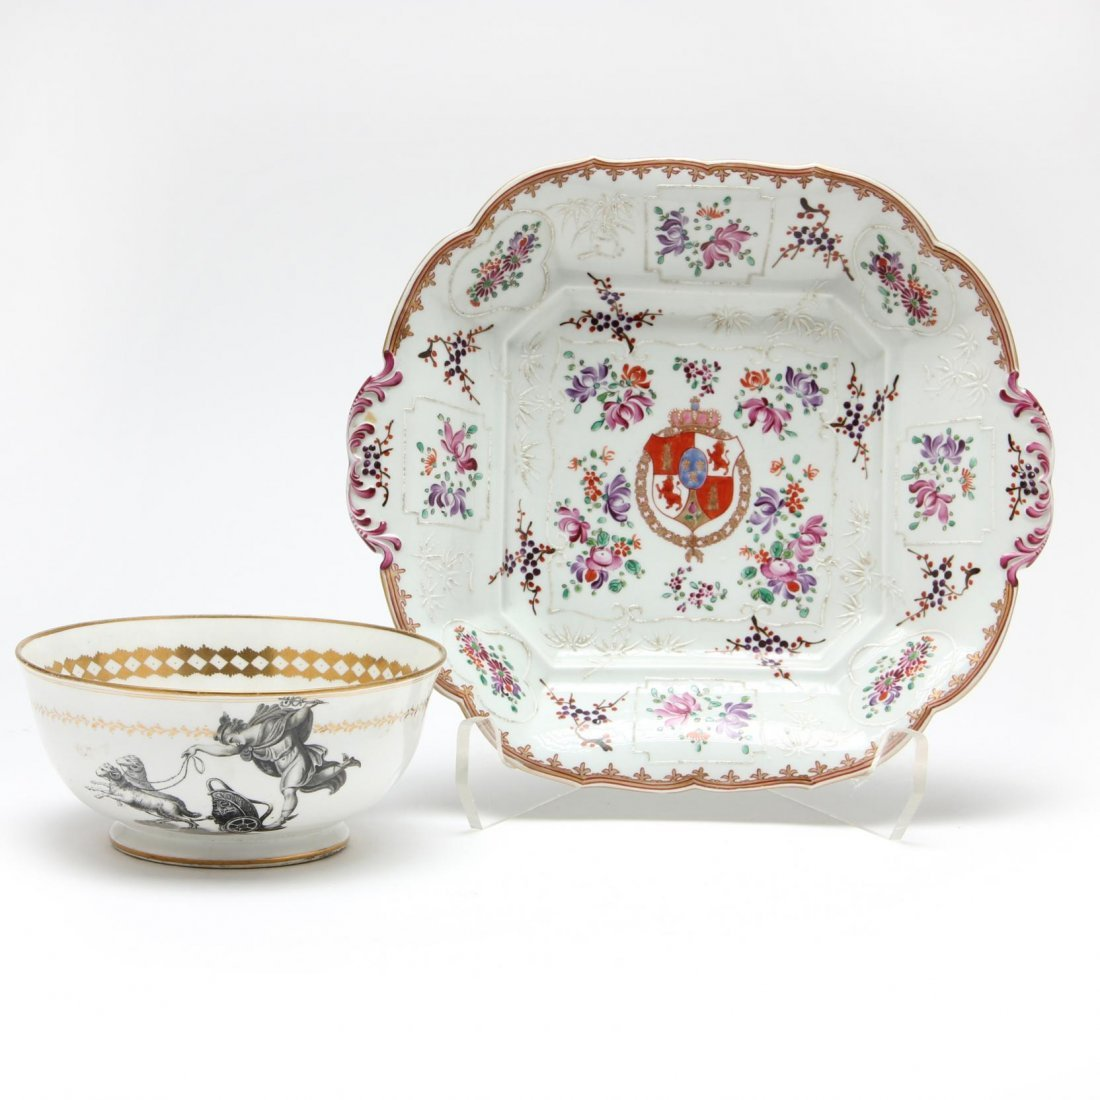 Two Antique Porcelain Dishes